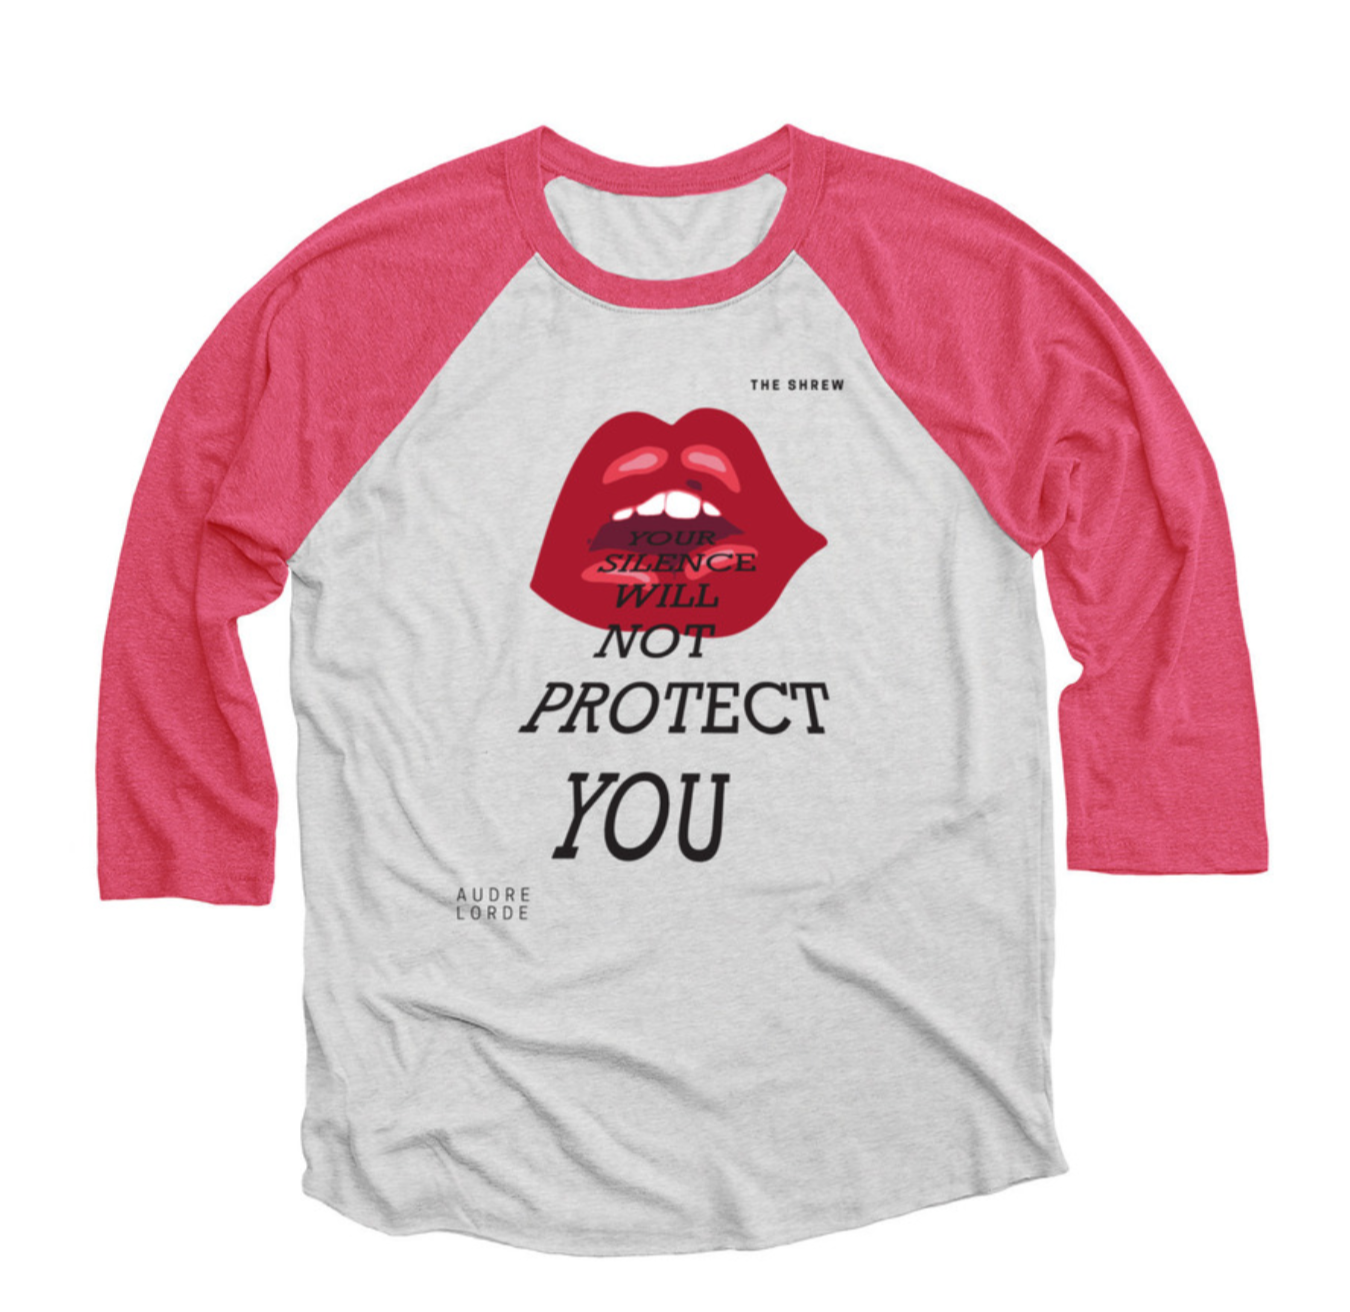 Pink and Heather White #SpeakOut Campaign 3/4 Baseball Tee